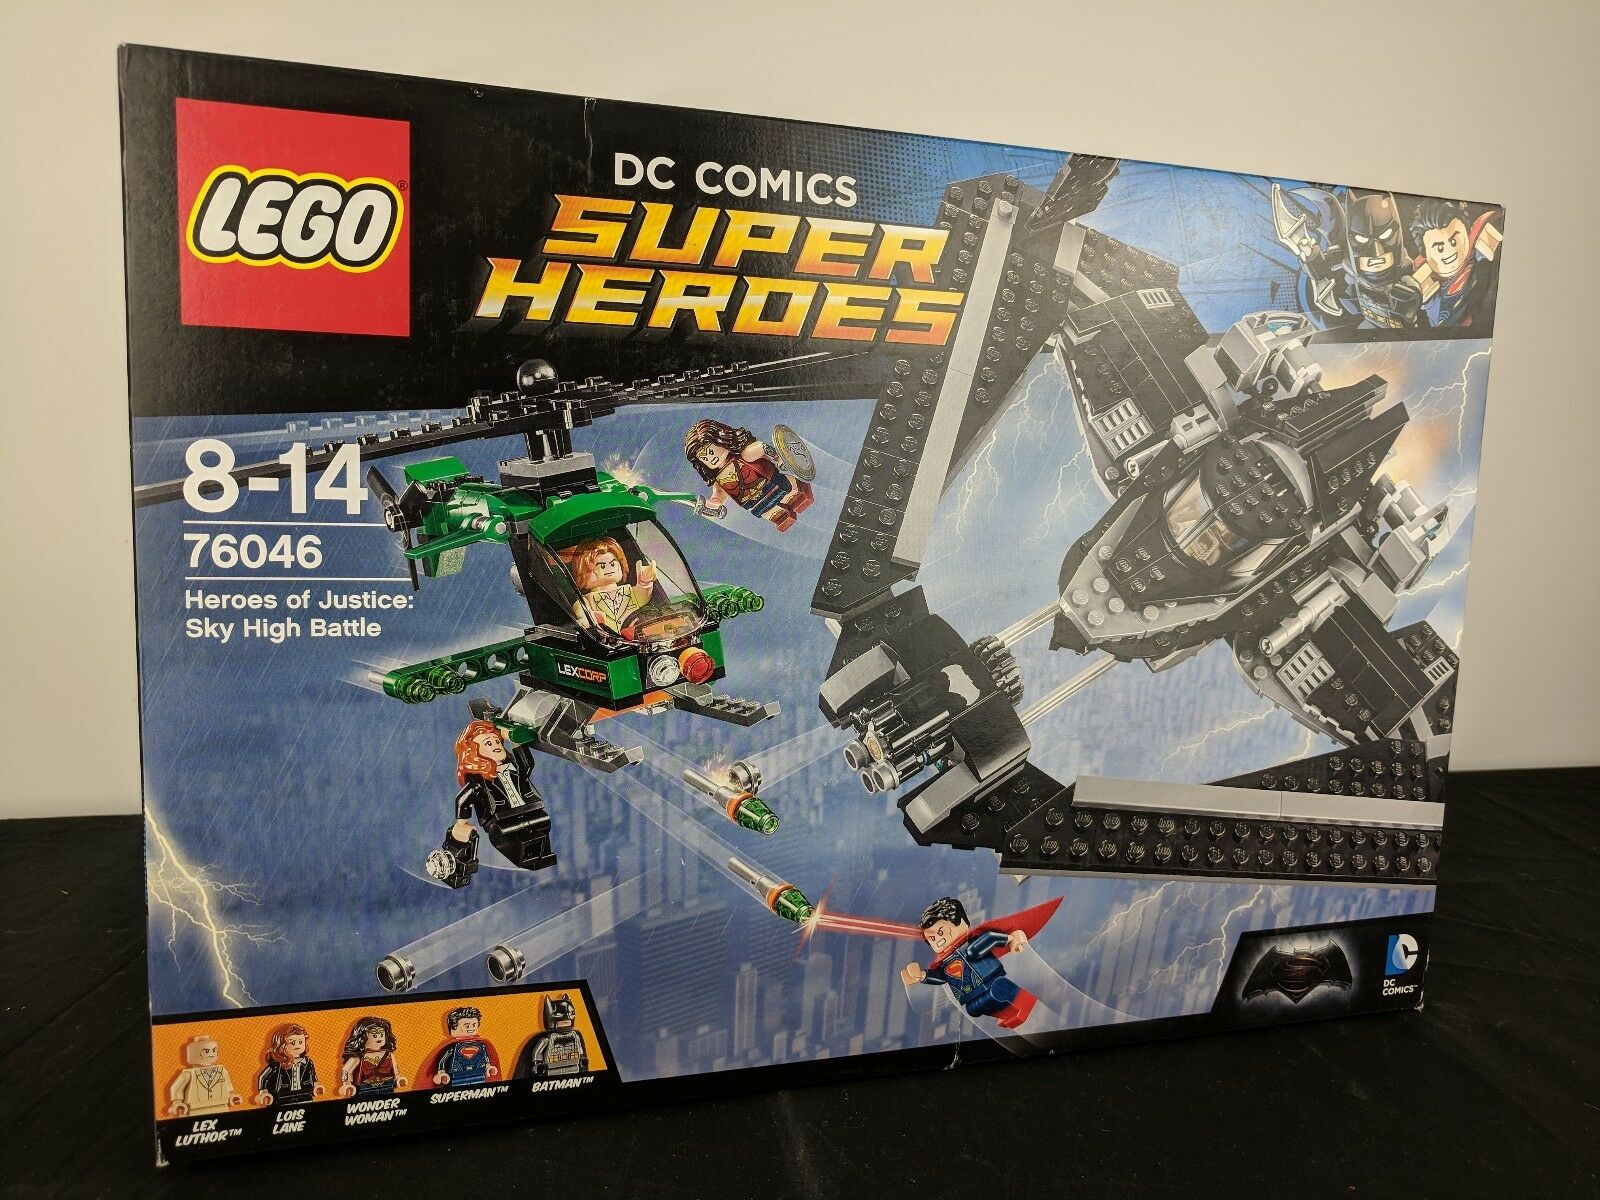 Brand new LEGO DC Comics Super Heroes 76046 Heroes of Justice Sky High Battle